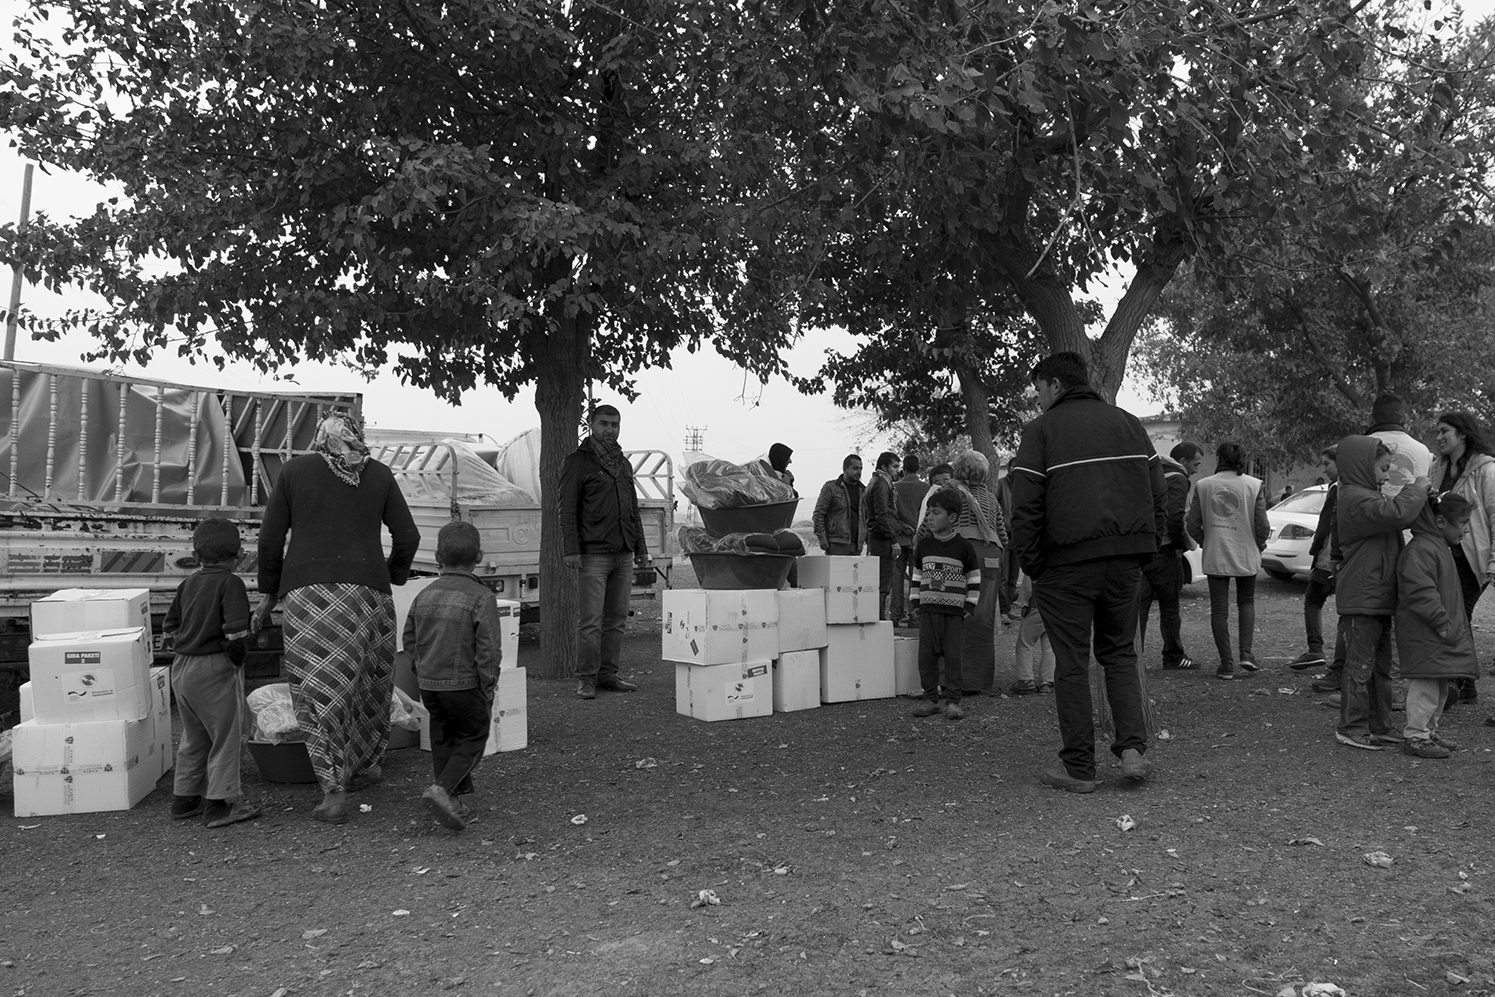 Relief package delivered to Syrianrefugees on the outskirt of Suruç located a few kilometers away from their native country.